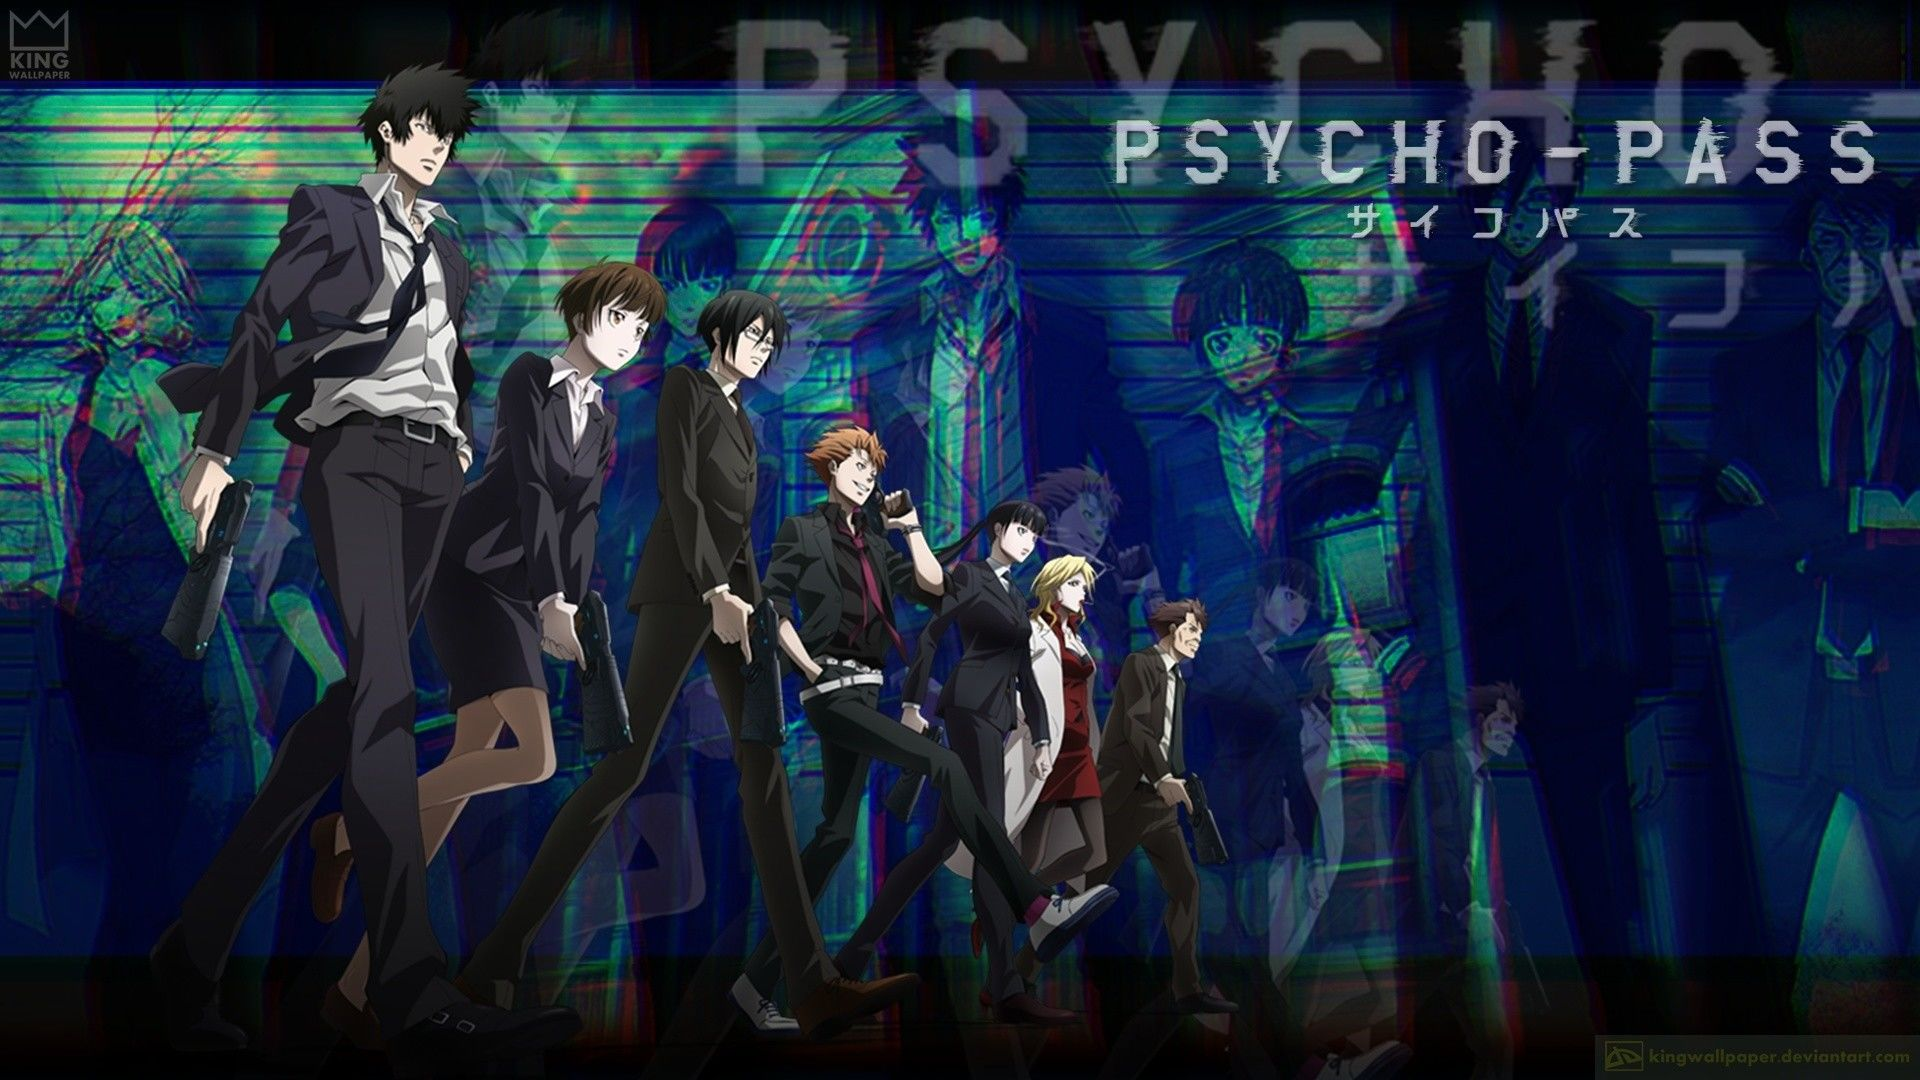 Psycho-Pass - Psycho Pass Extended 1 extra